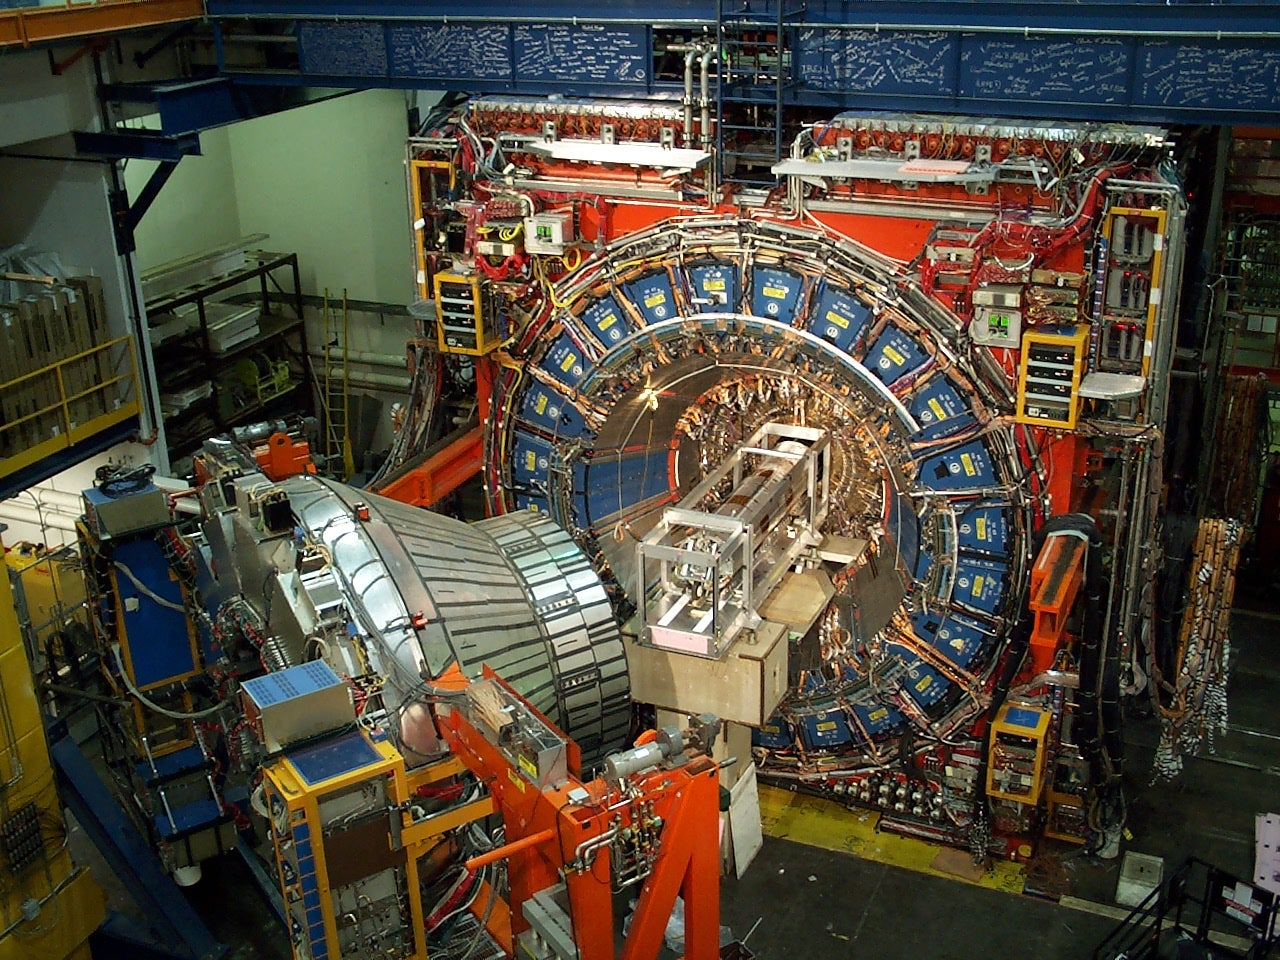 Fermilab Physicists Have Detected A Possible New Particle or New Force